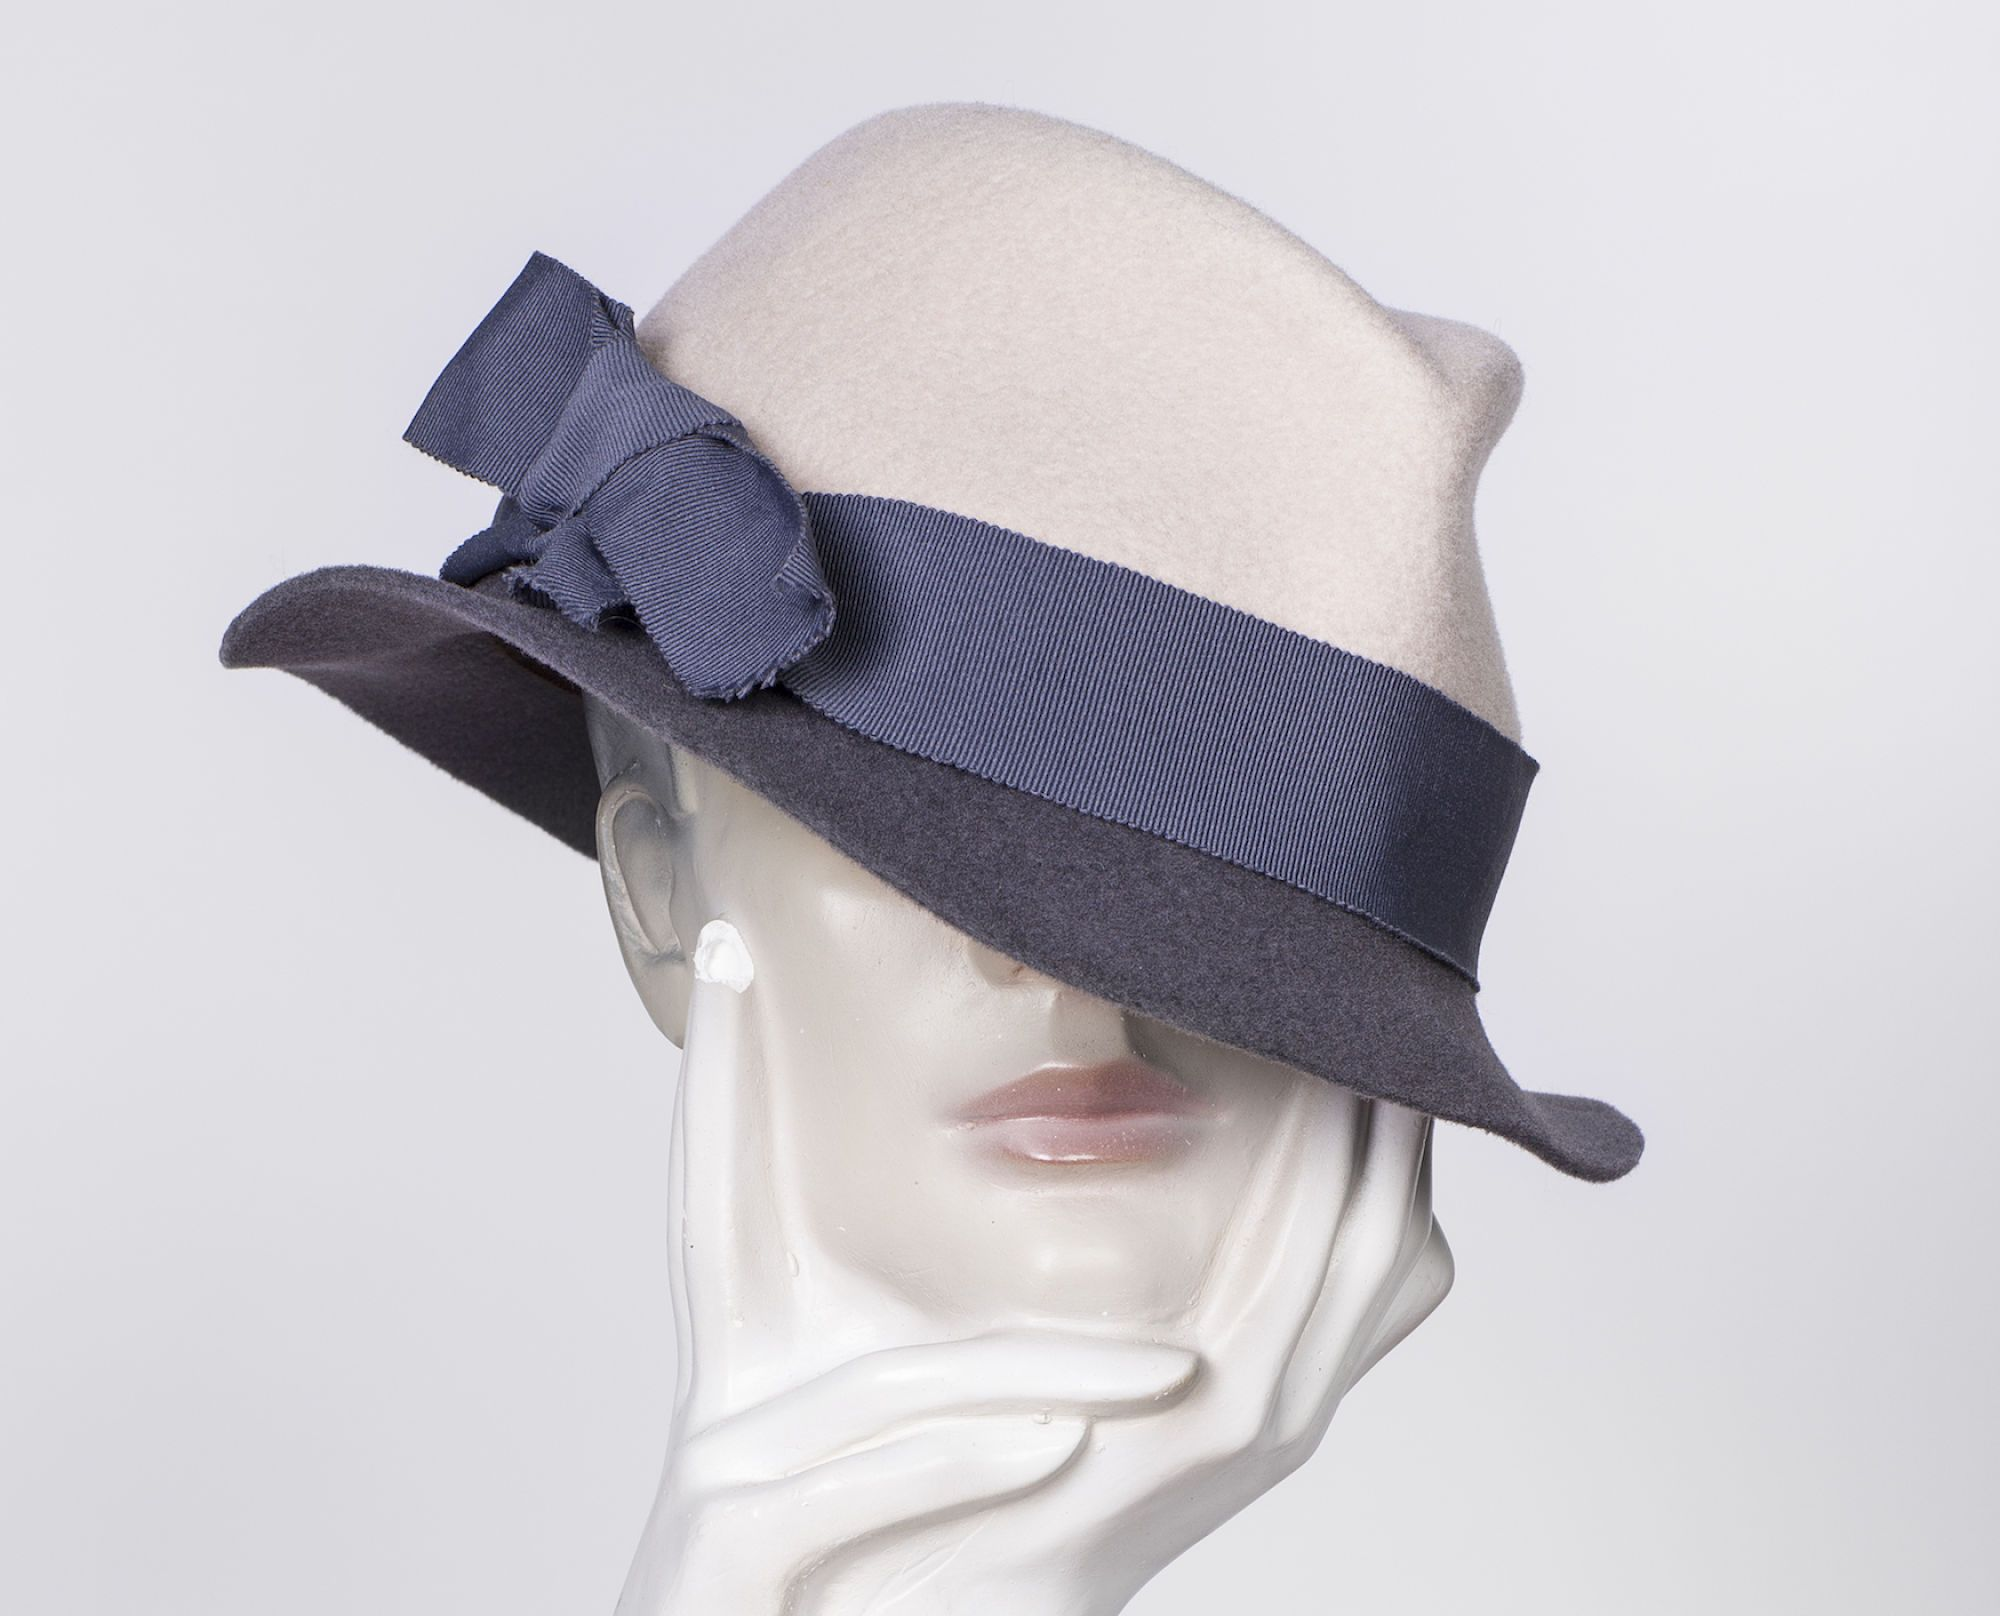 Demure couture hat.  The finest handmade couture hats from Amsterdam. Visit demure at www.demure.nl and get inspired by the latest collections. Only natural materials, locally sourced by a select network of suppliers.  Millinery at it's best.   Feel free to contact Demure to setup an appointment for a studio visit or a personal conversations about your preferred style and fabrics.  www.demure.nl